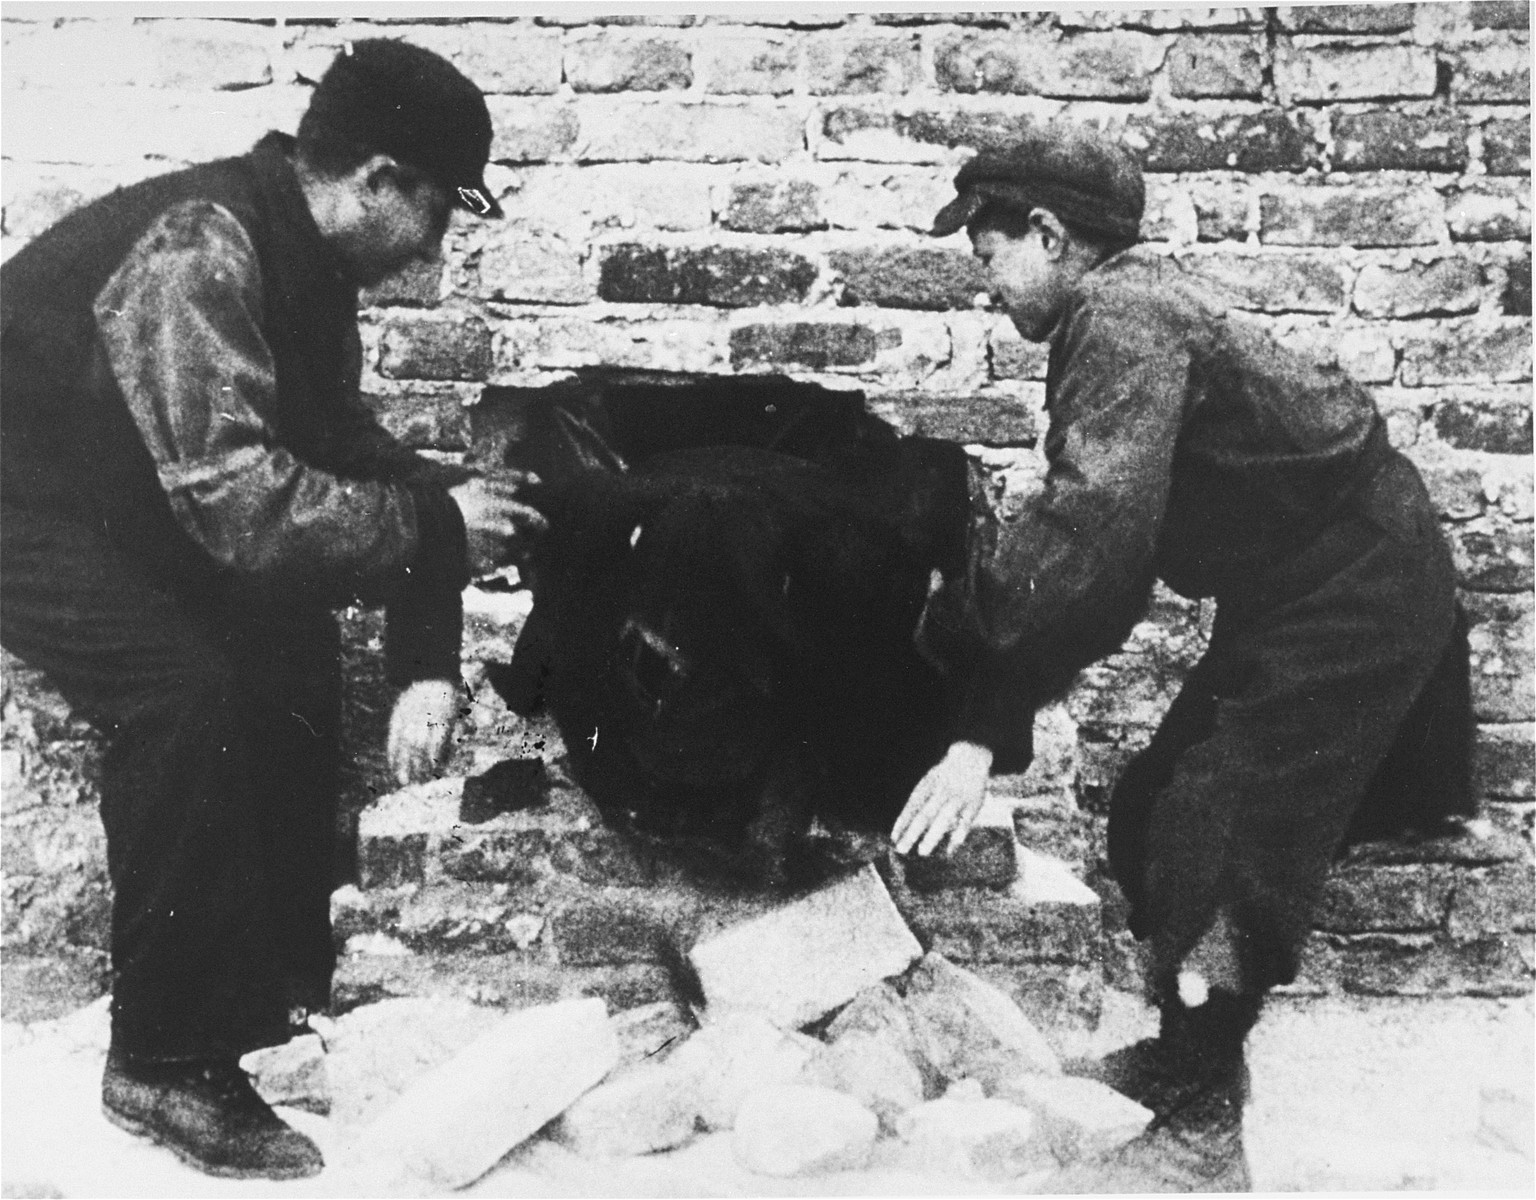 Two young smugglers pull a third through a hole in the ghetto wall.